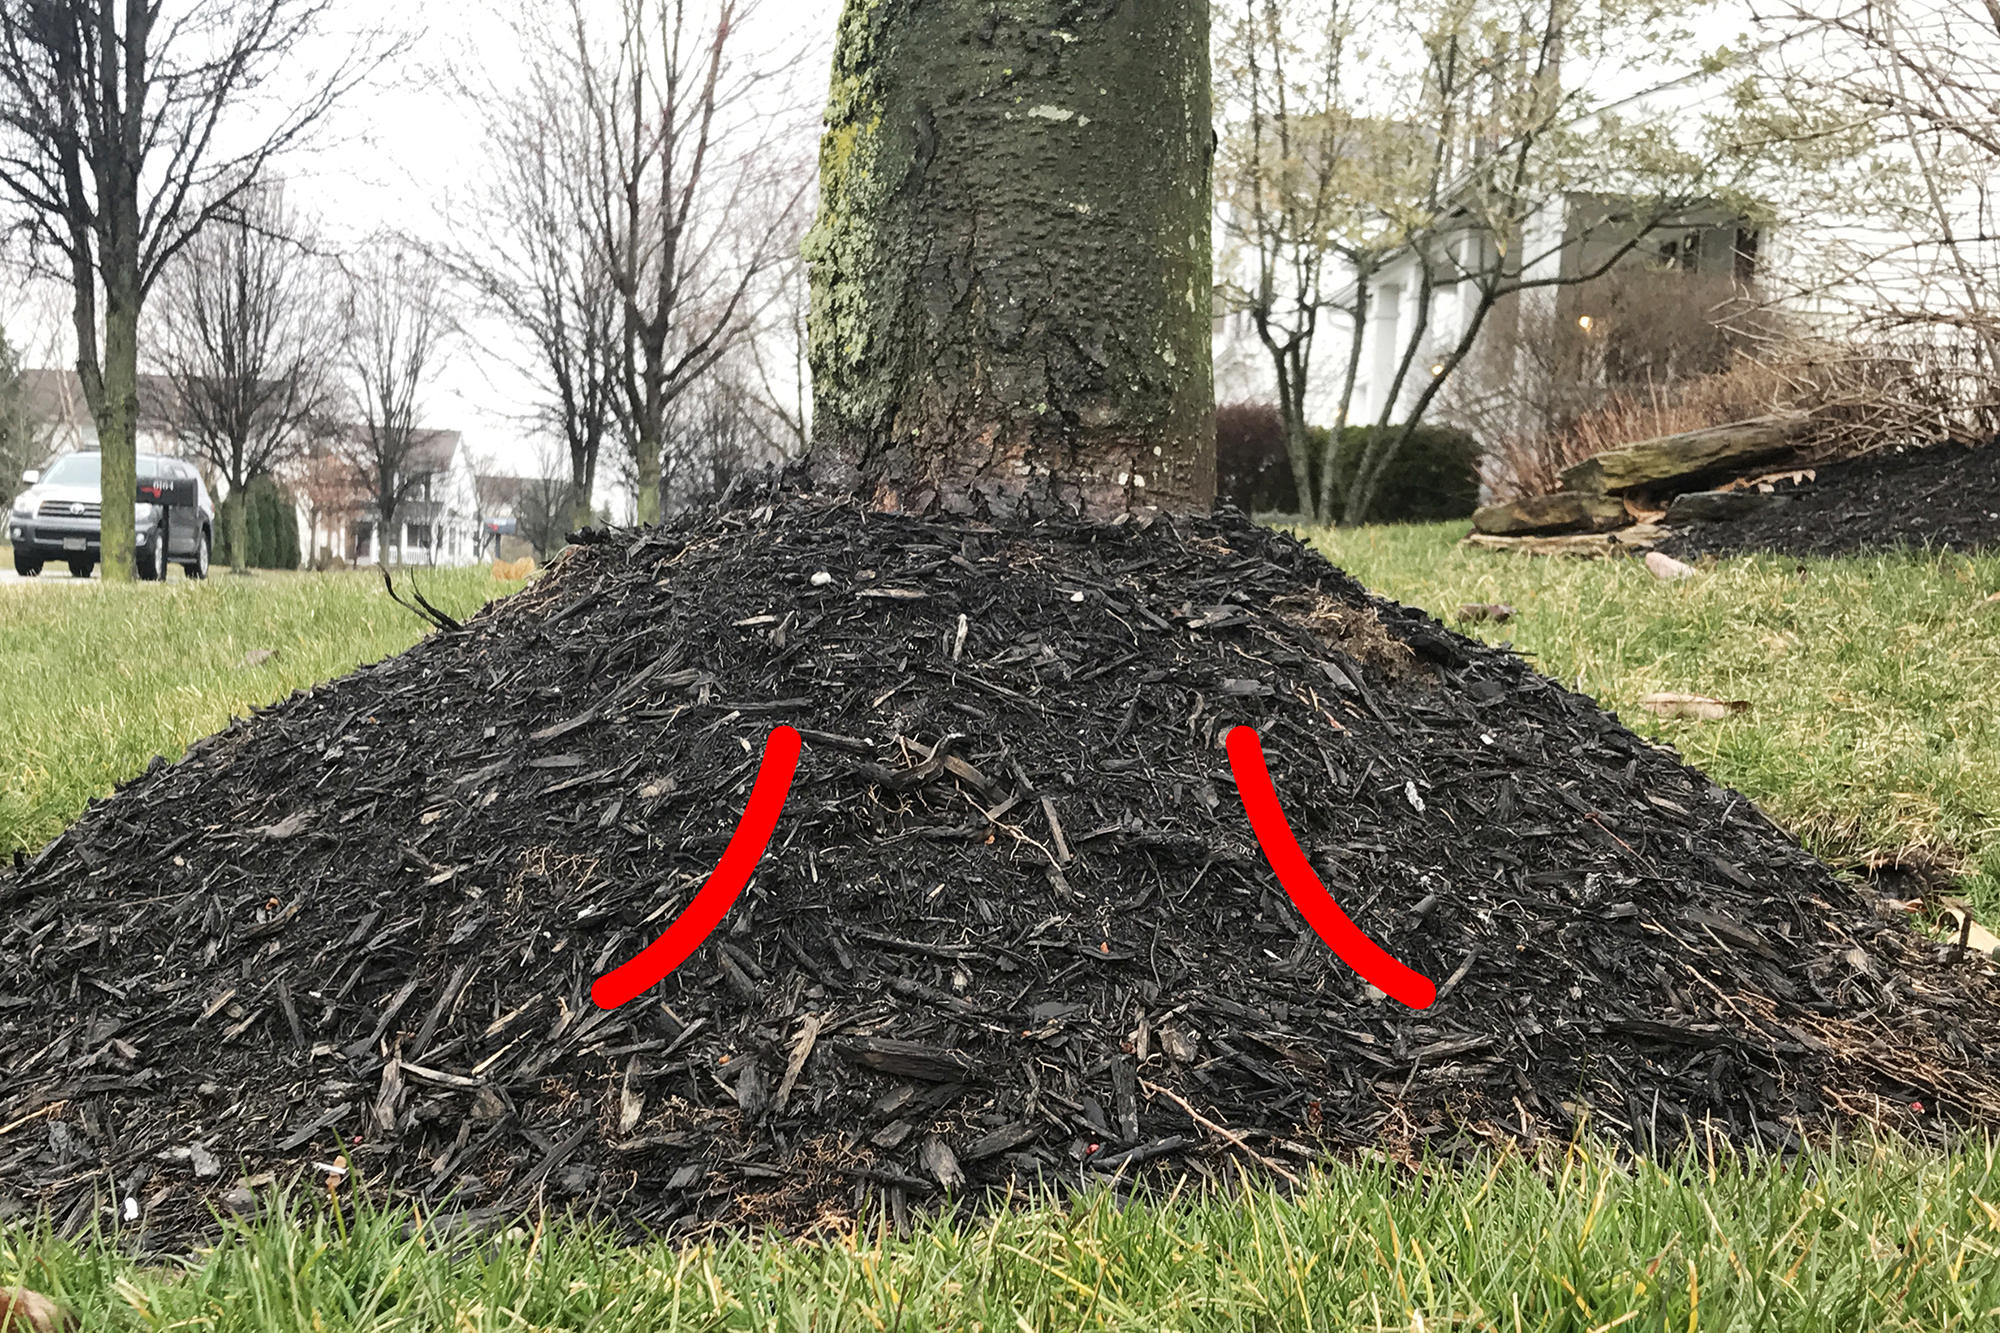 Bad - Root flare is below the mulch